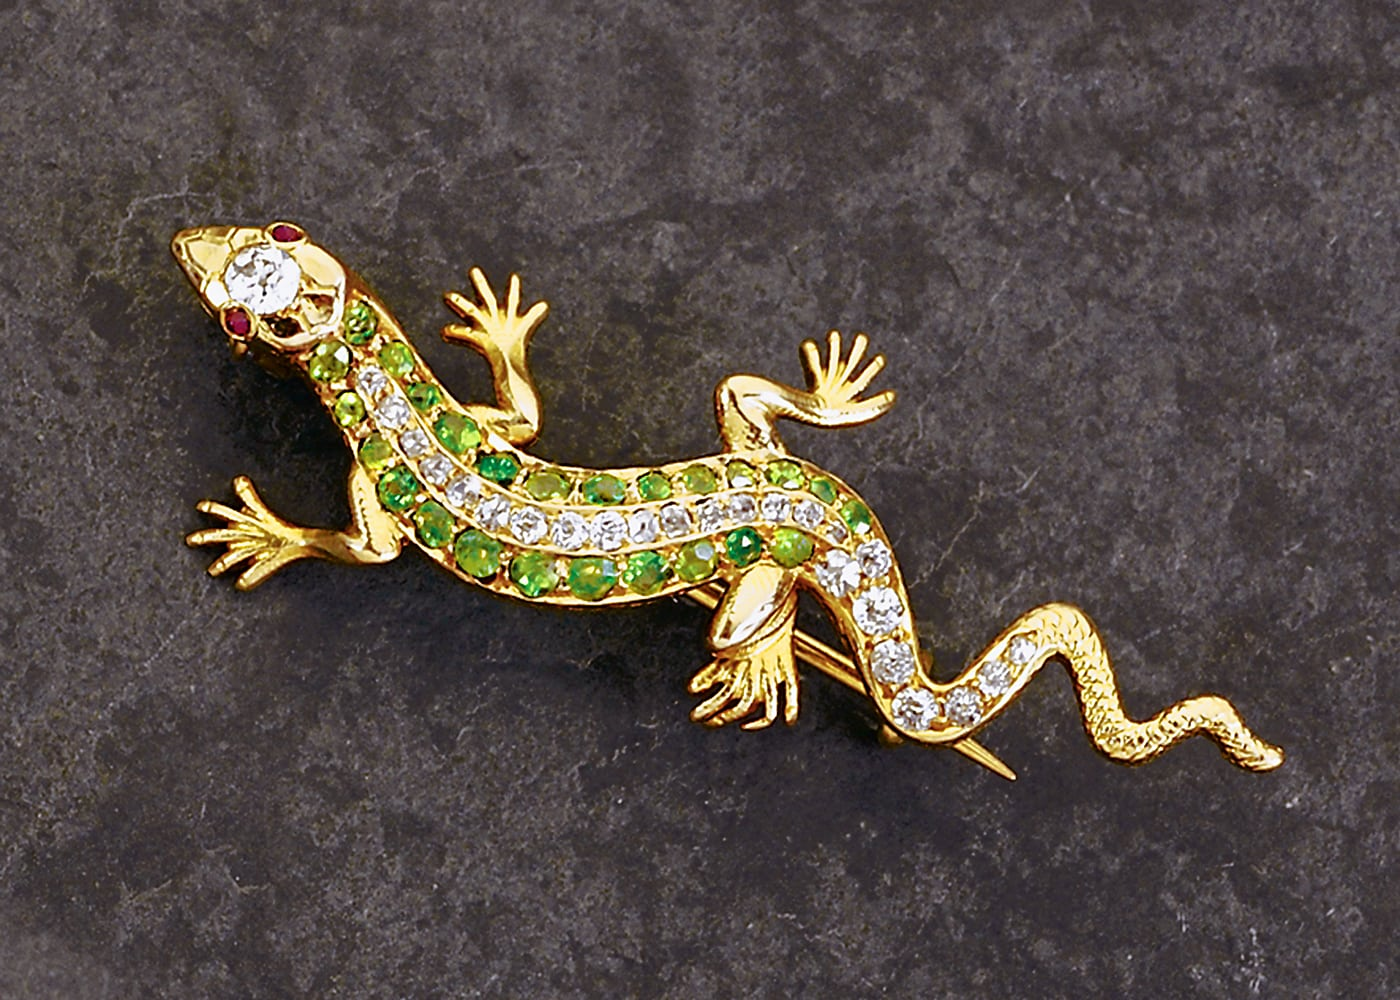 Vintage Geko lizard gold pin with emeralds and diamonds flanking body and ruby eyes and large diamond on head